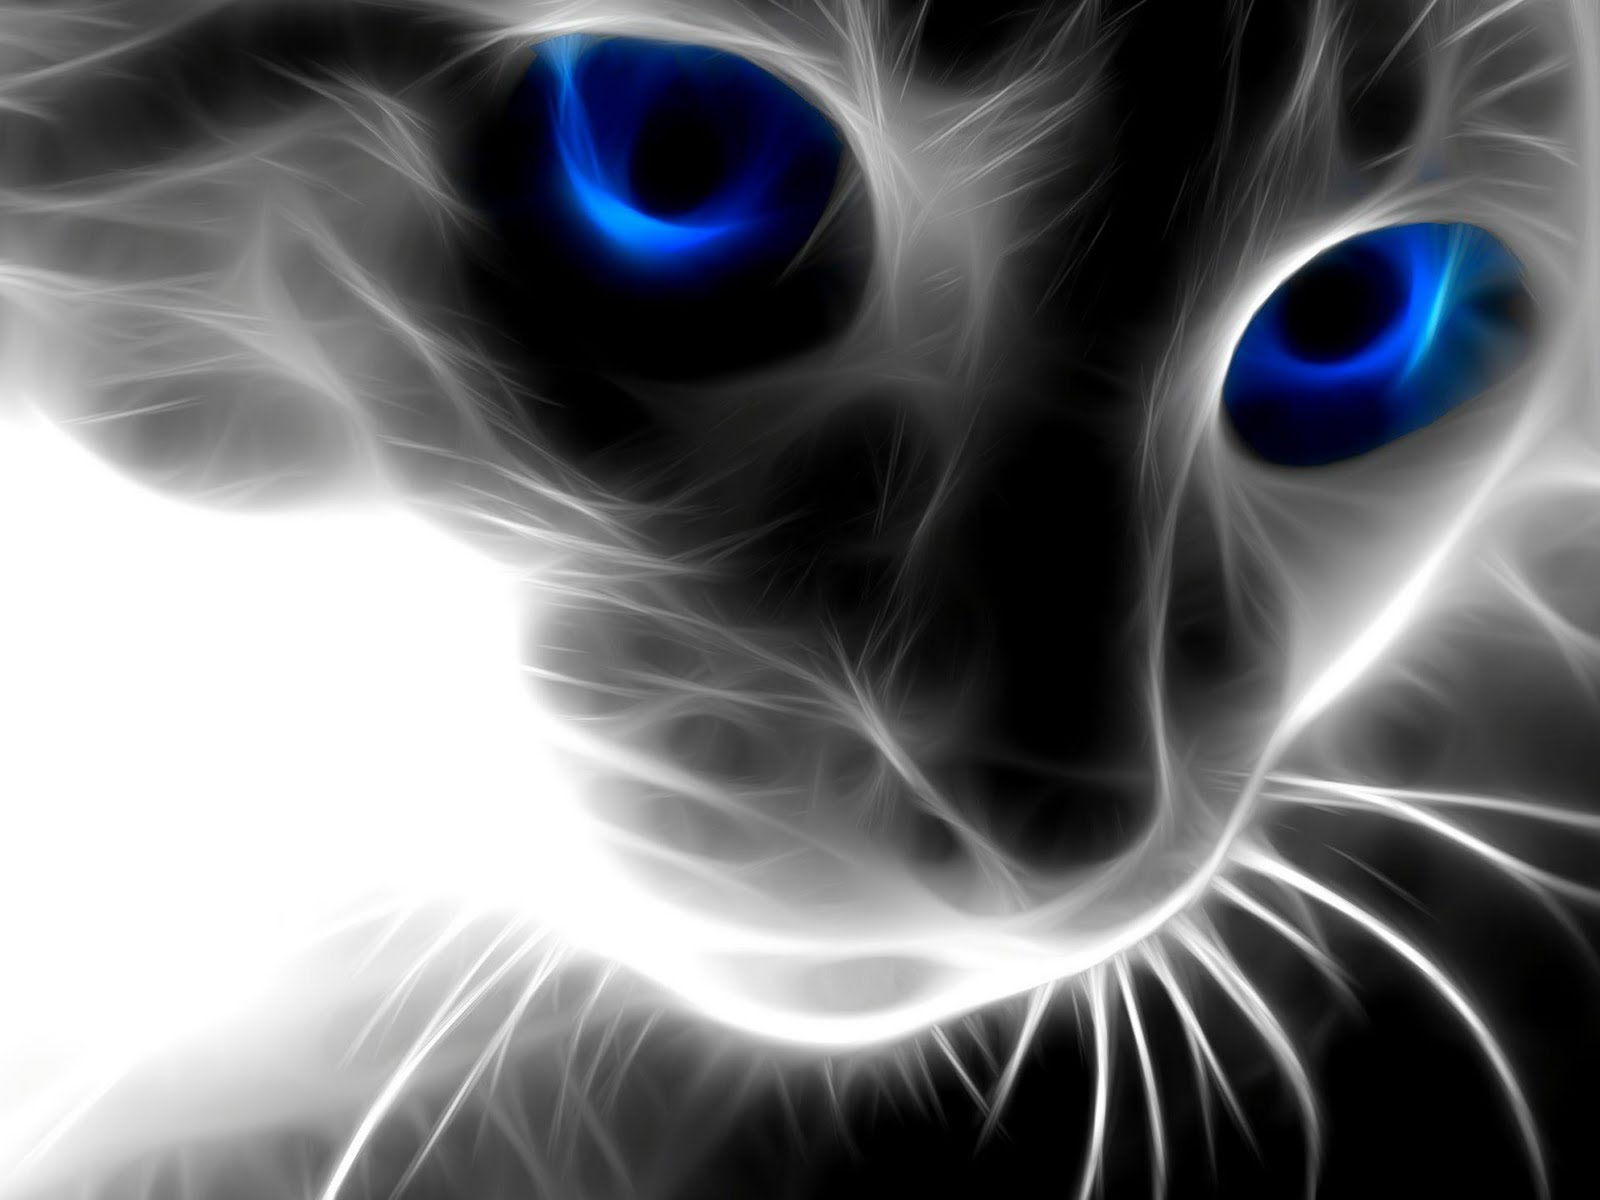 Zika Download: Wallpaper Magic Cat Windows 7